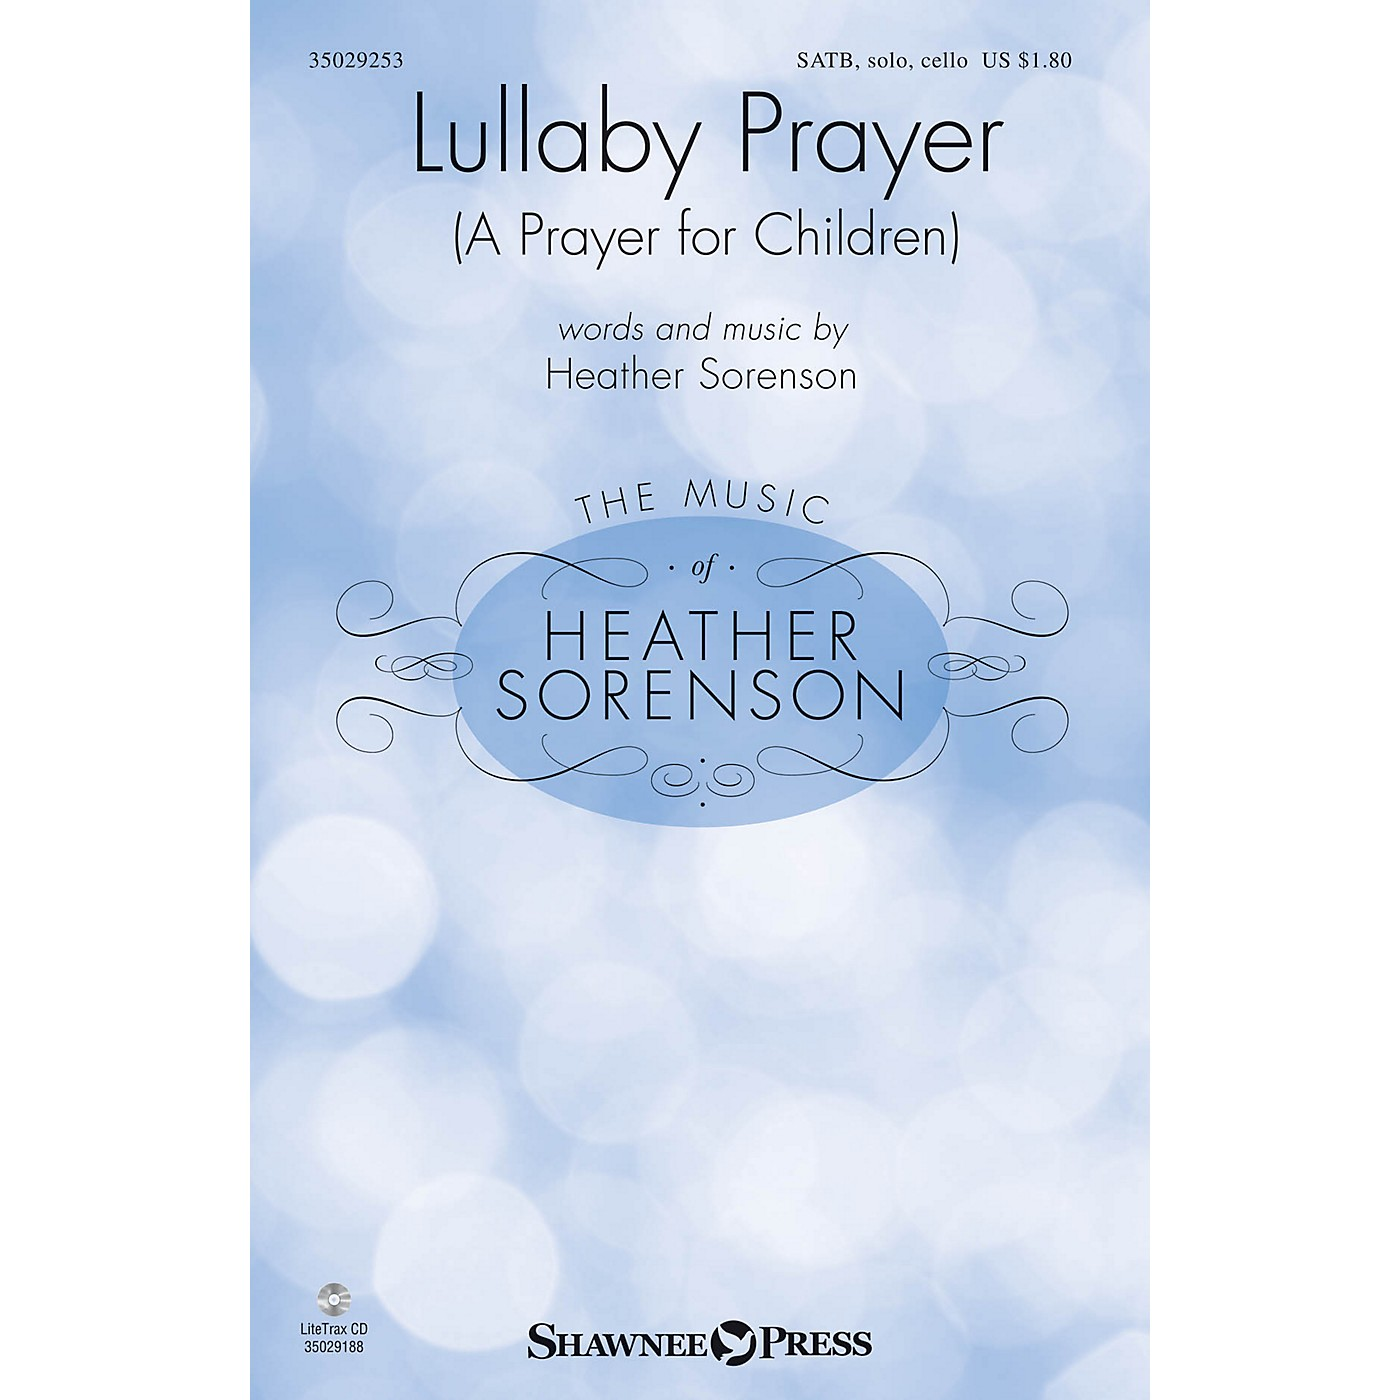 Shawnee Press Lullaby Prayer (A Prayer for Children) SATB Chorus and Solo composed by Heather Sorenson thumbnail